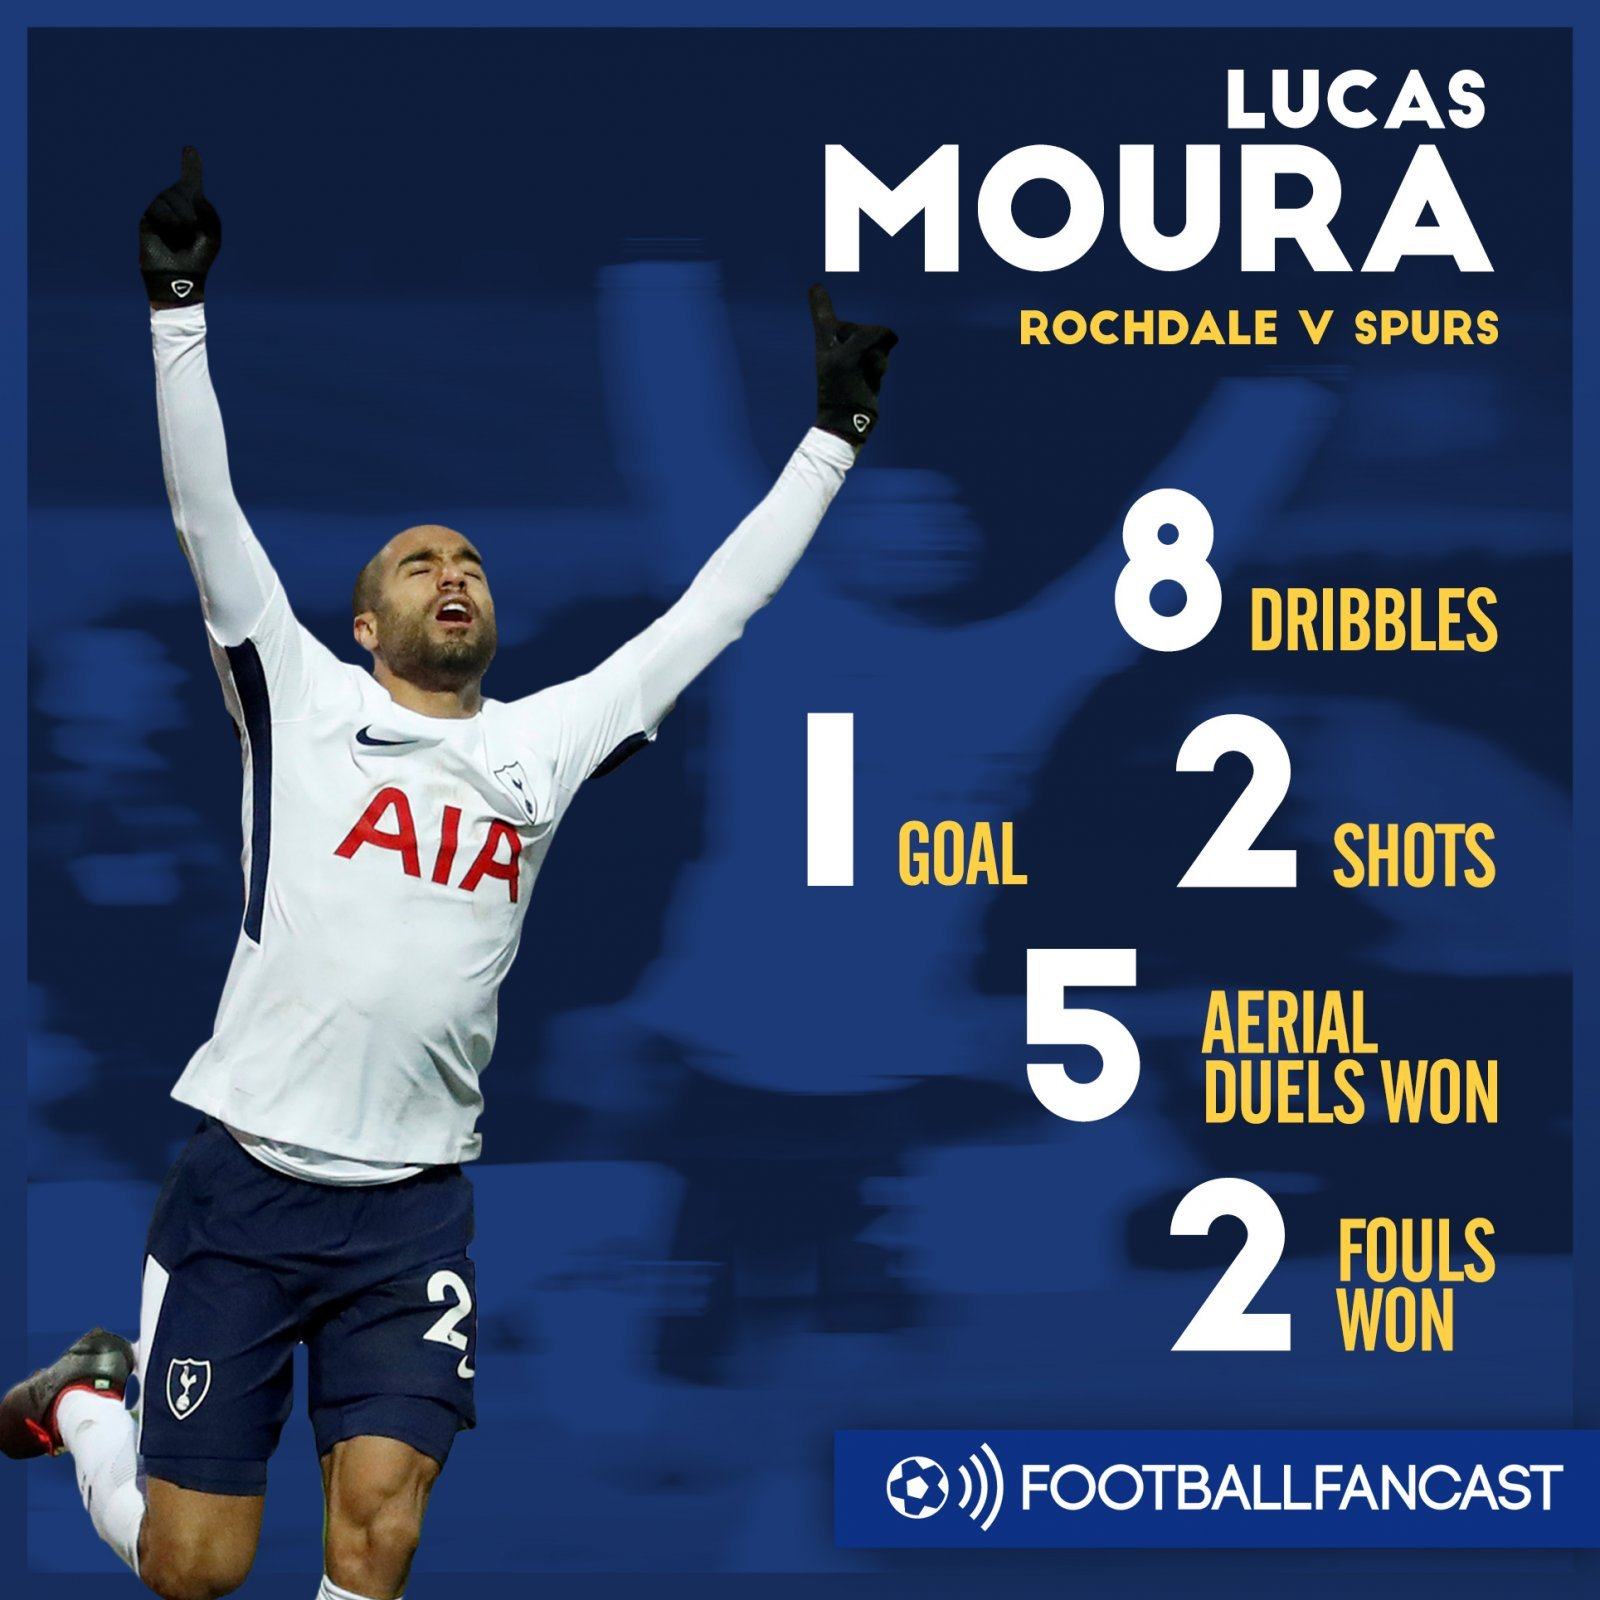 Lucas Moura Stats Fifa: 5 Aerials Won, 2 Shots: Why Tottenham Fans Gave 5 Ft 8 Ace